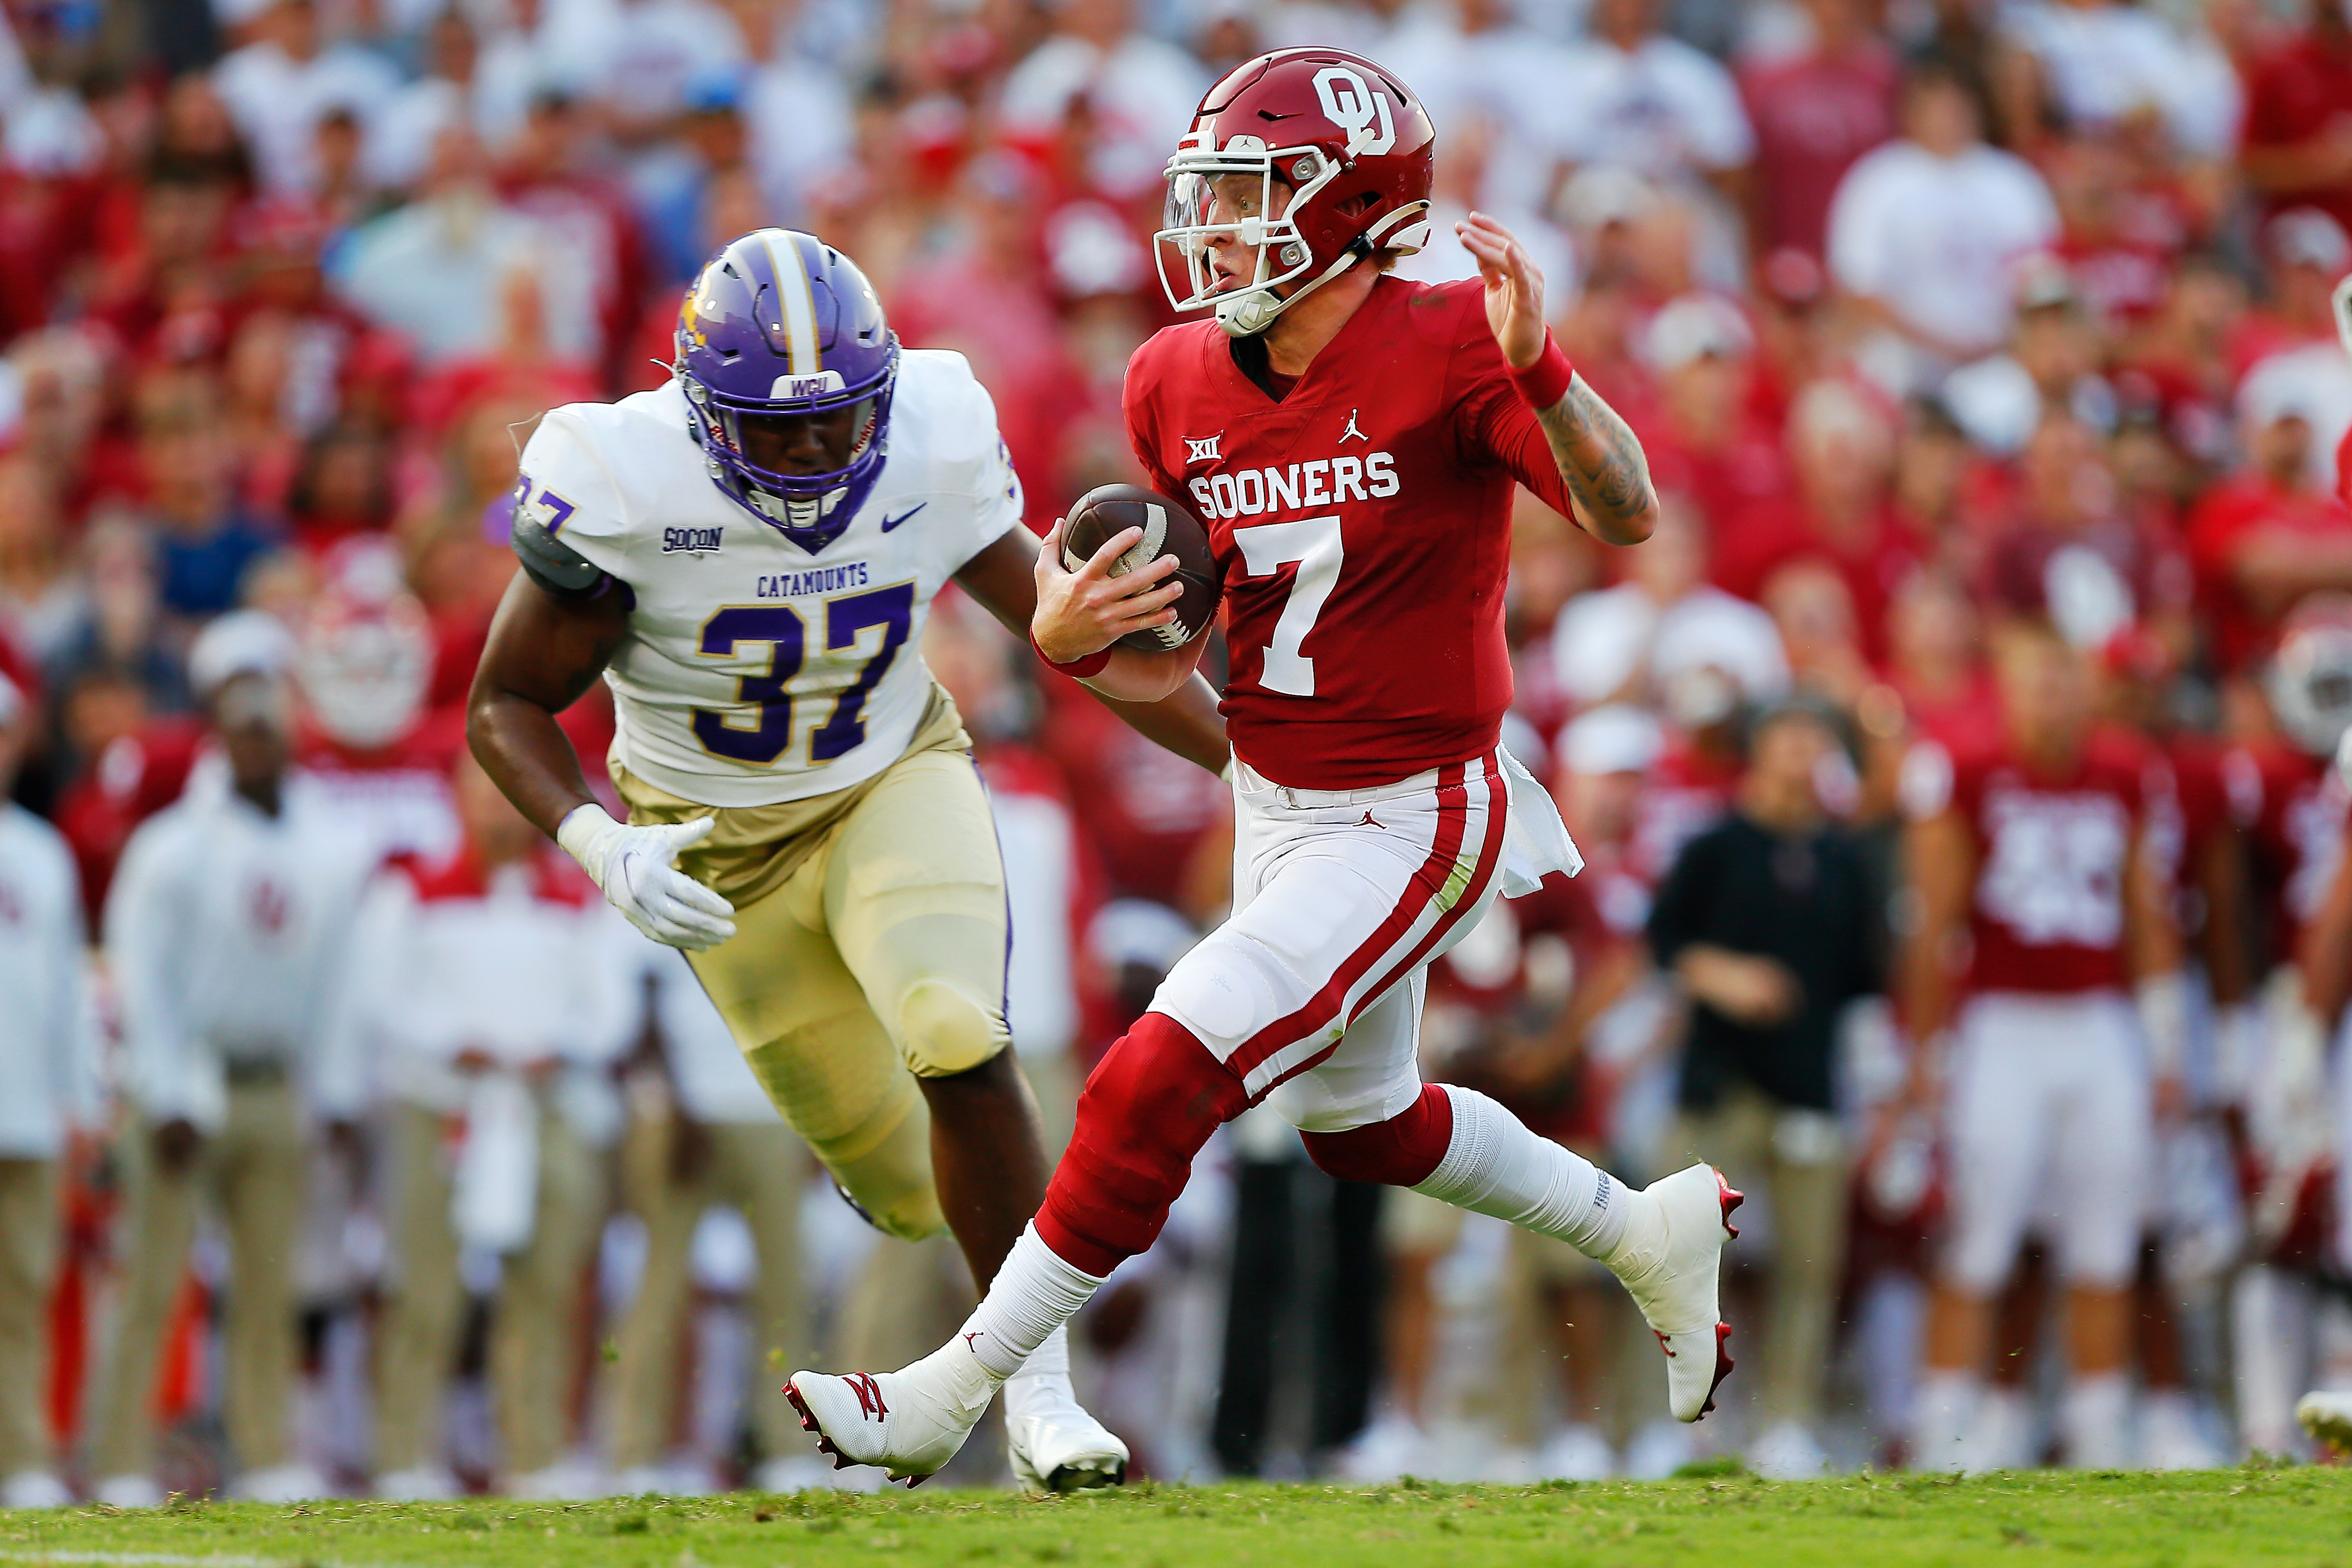 Quarterback Spencer Rattler of the Oklahoma Sooners runs to the one-yard line on a 22-yard run against linebacker Ty Harris of the Western Carolina Catamounts on the last play of the first quarter at Gaylord Family Oklahoma Memorial Stadium on September 11, 2021 in Norman, Oklahoma.